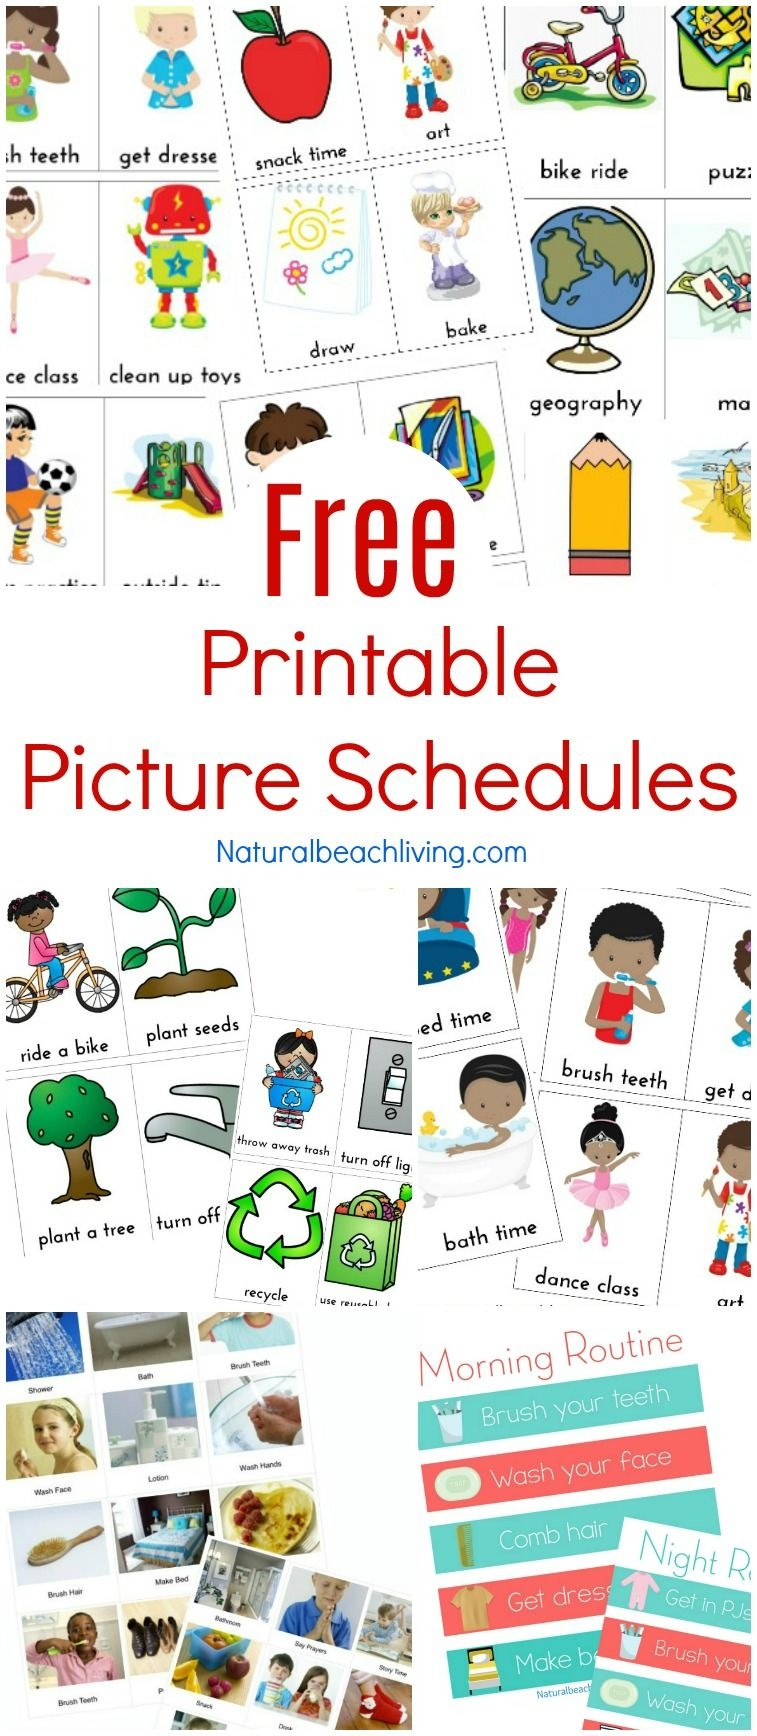 Free Printable Picture Schedule Cards - Visual Schedule Printables - Free Printable Daily Routine Picture Cards